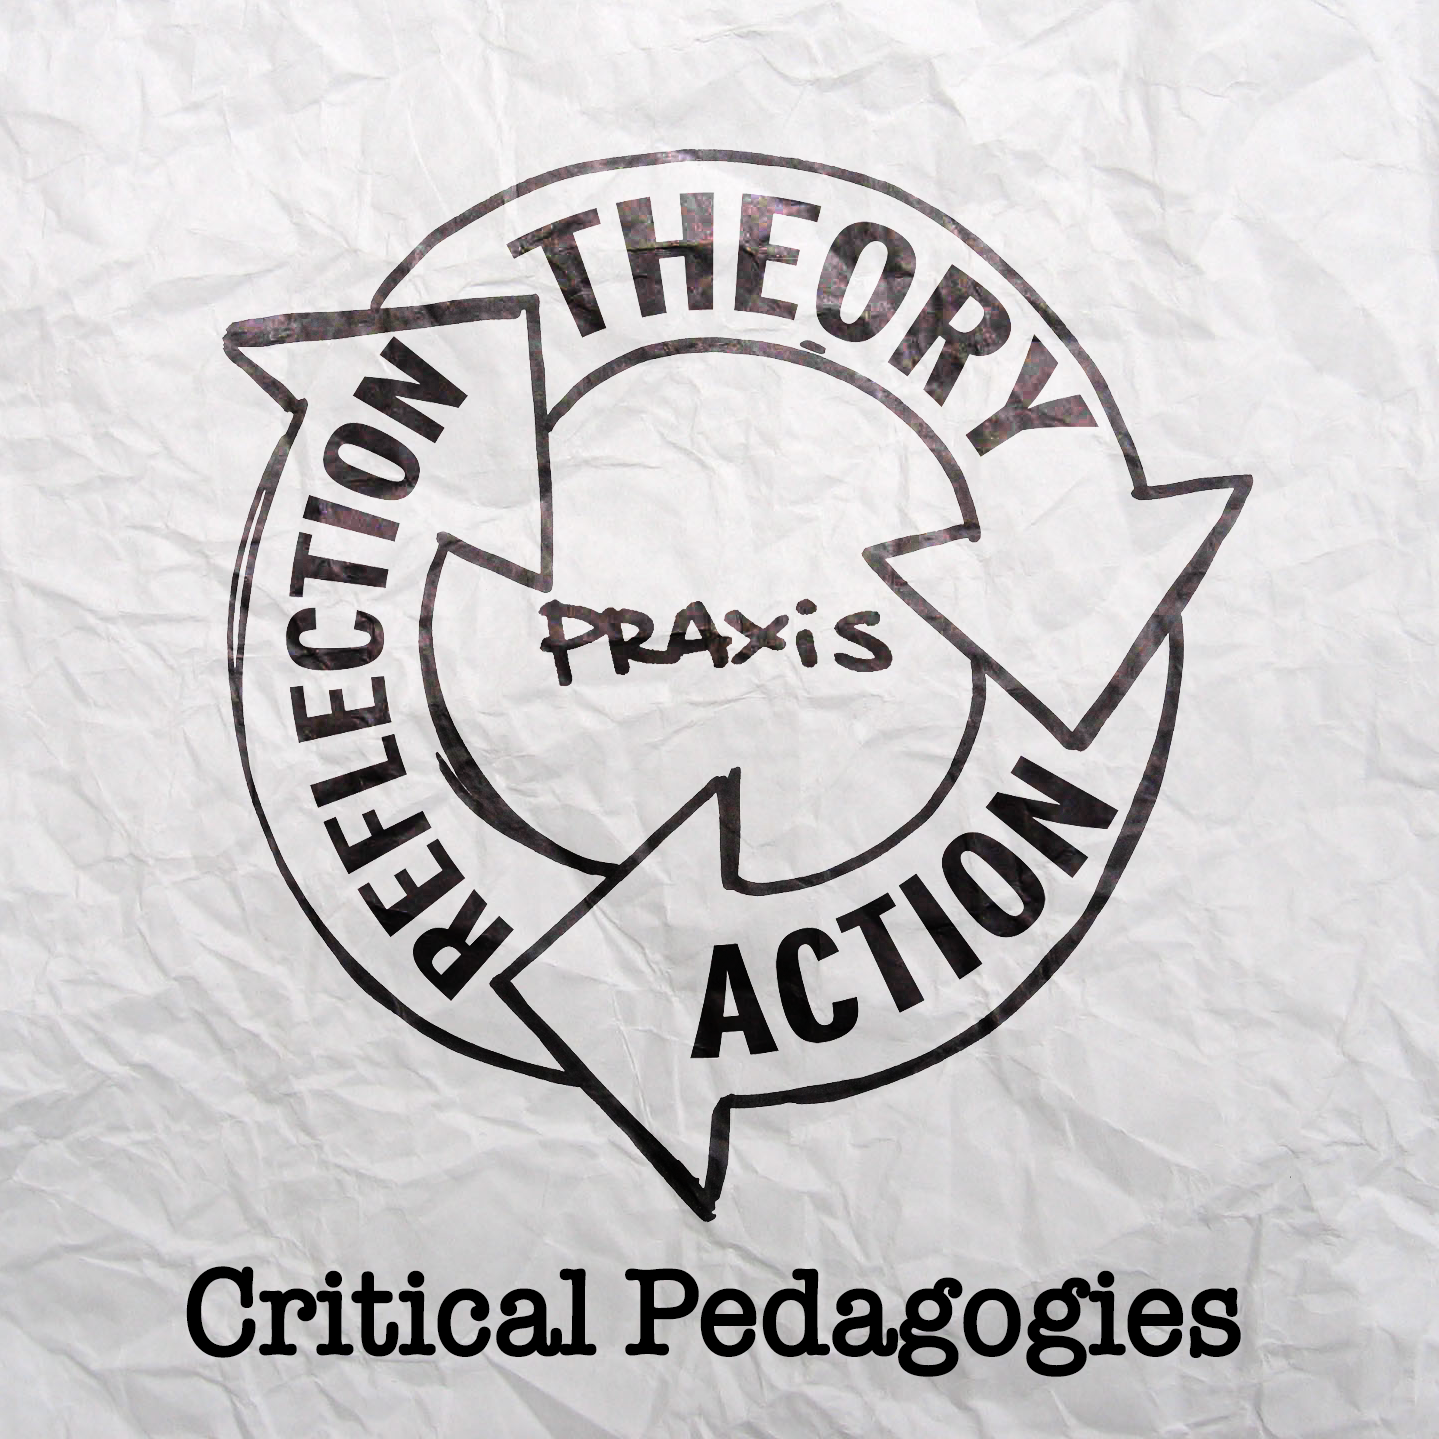 Critical Pedagogies-cropped.png